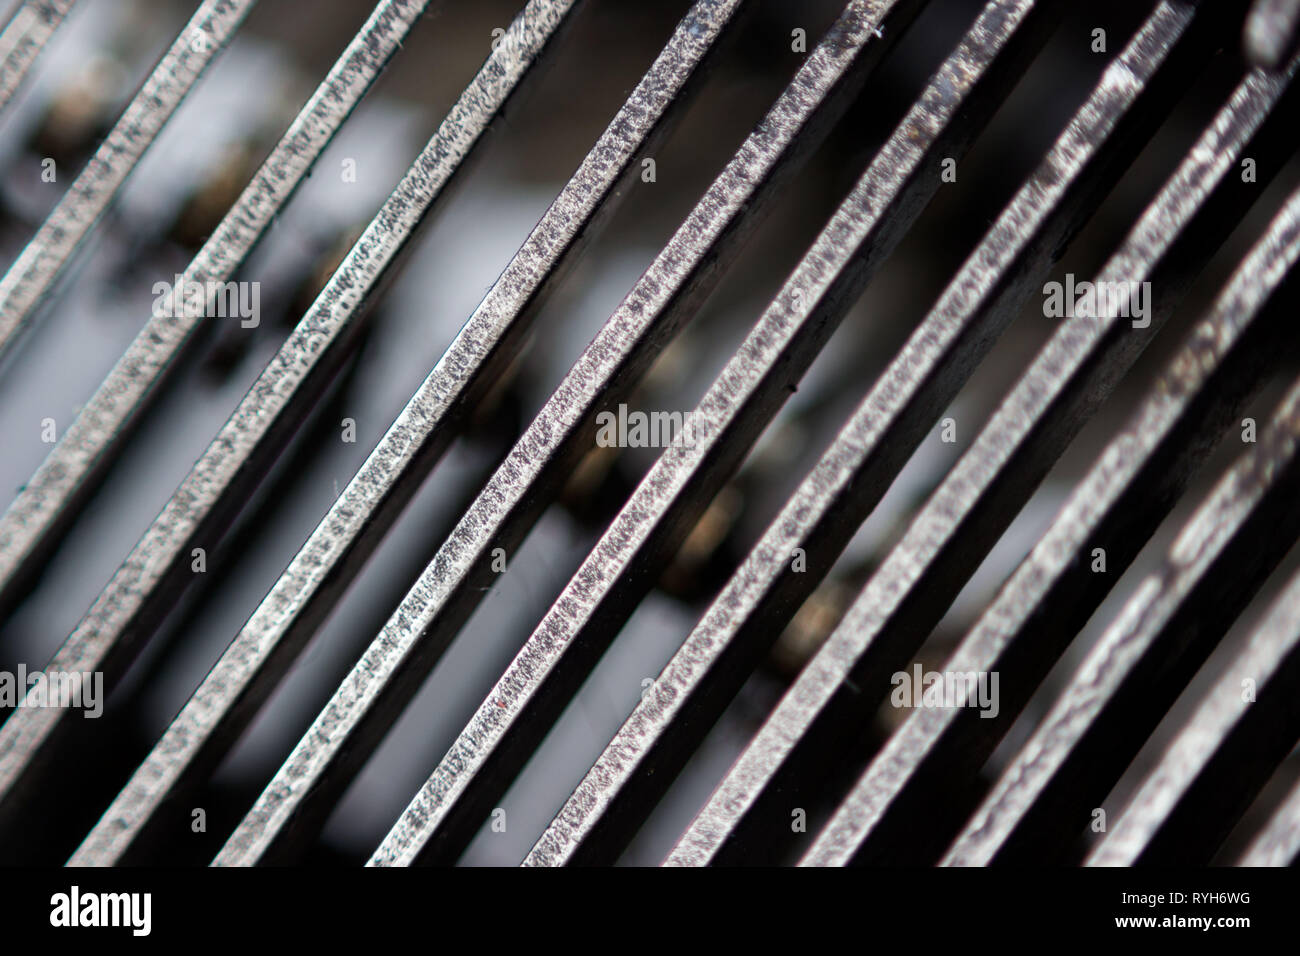 Hammers with letters, numbers and punctuation. Internal structure of the old Soviet typewriter close-up. Stock Photo